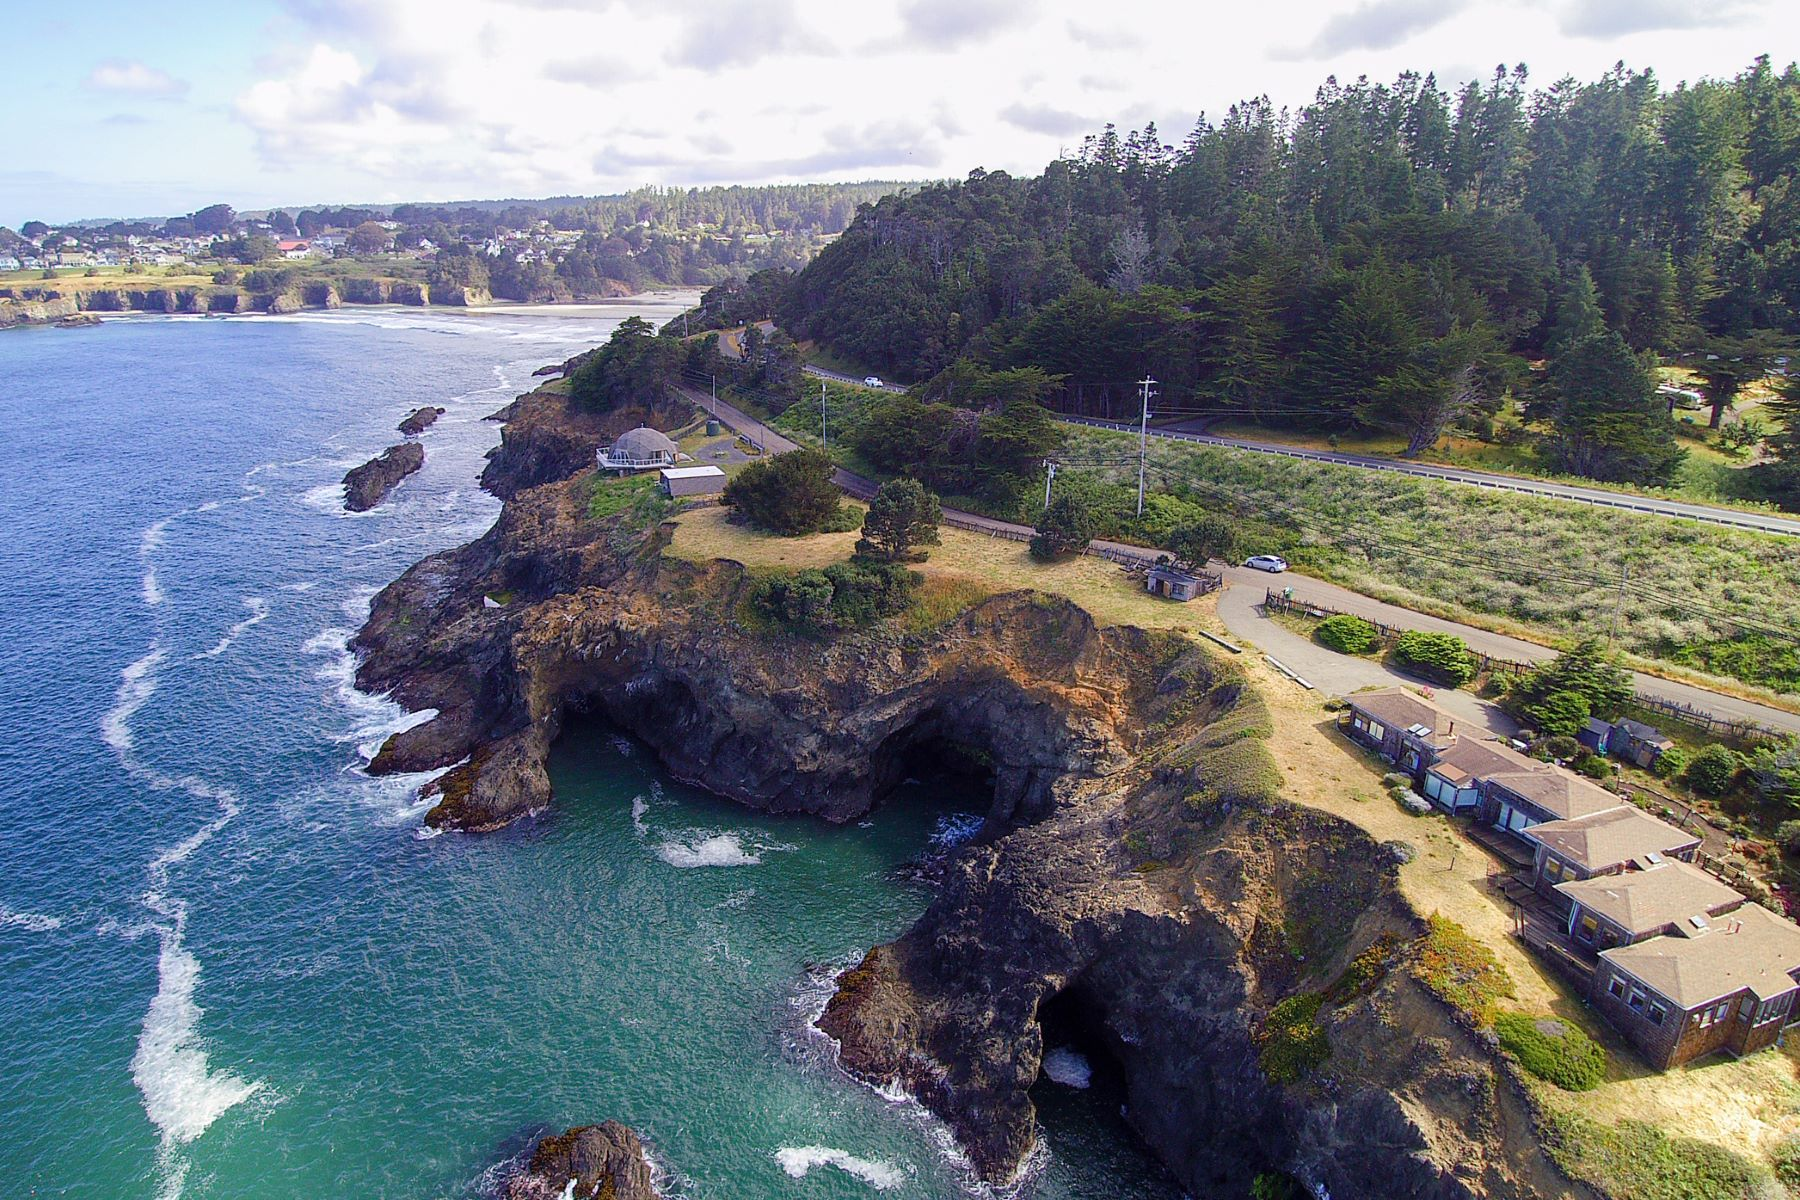 Casa Unifamiliar por un Venta en Iconic Views of Mendocino 9600 N Hwy One Mendocino, California 95460 Estados Unidos